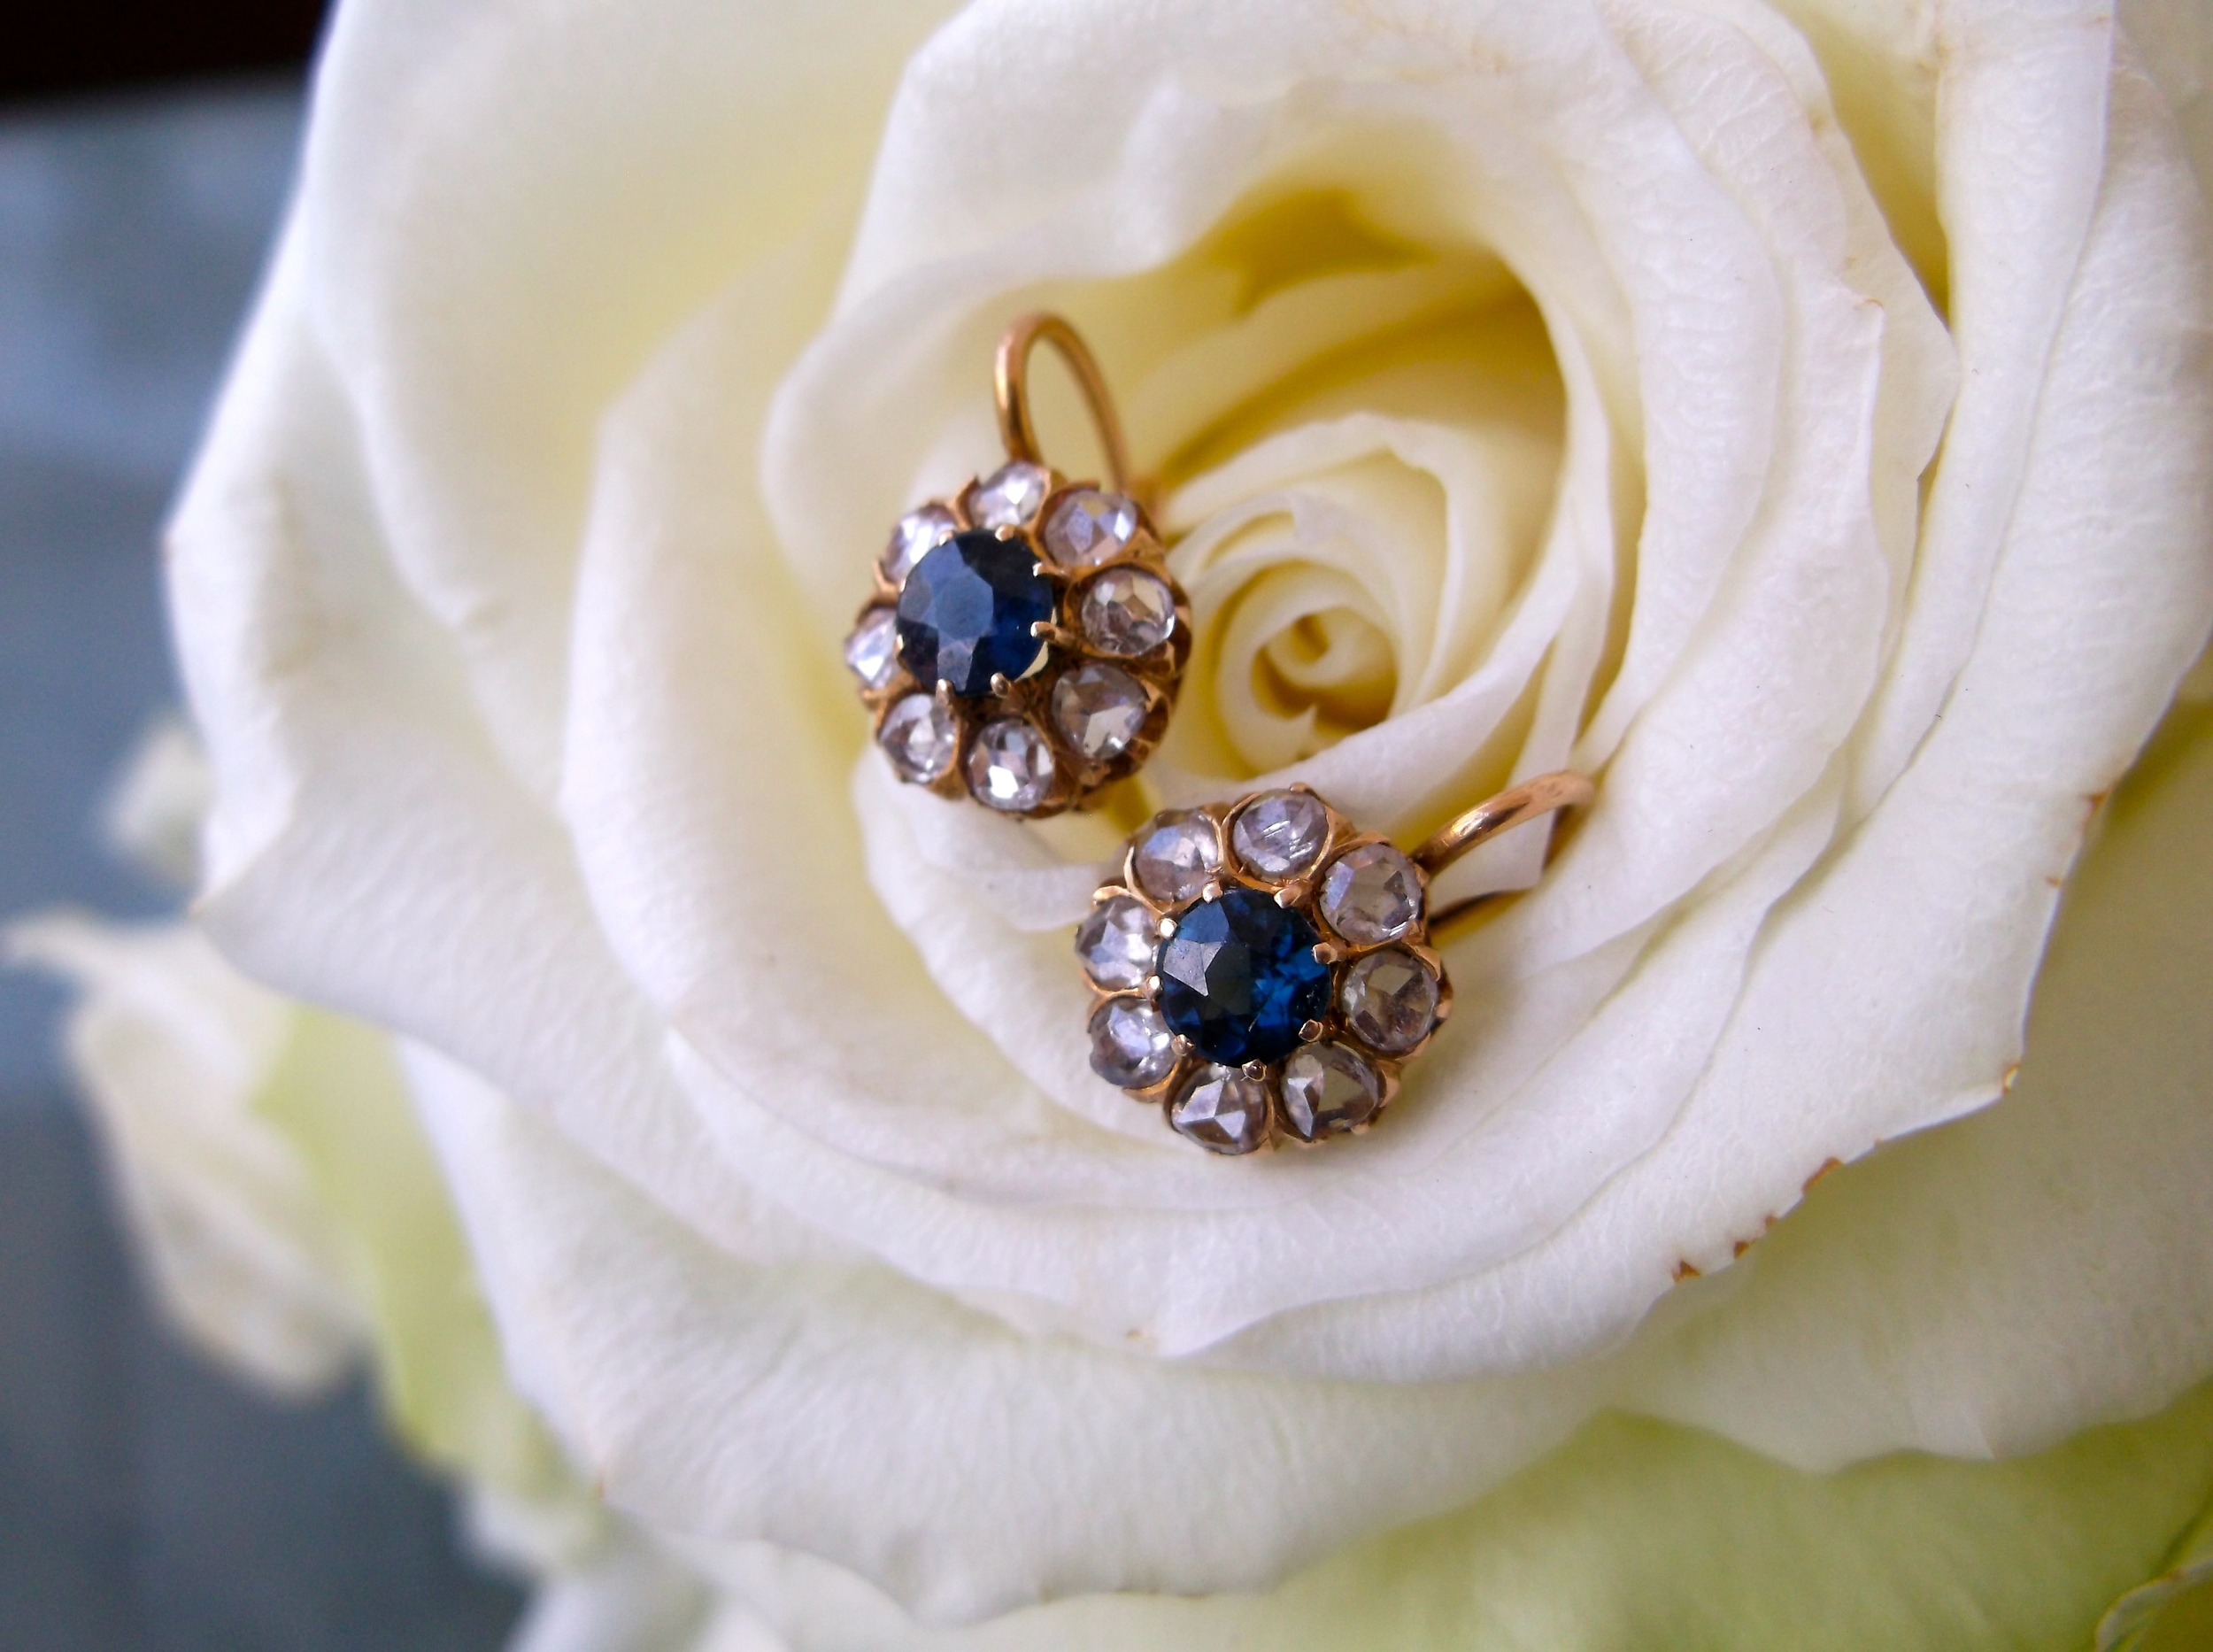 Victorian Era rose cut diamond and sapphire dainty drop earrings set in yellow gold.